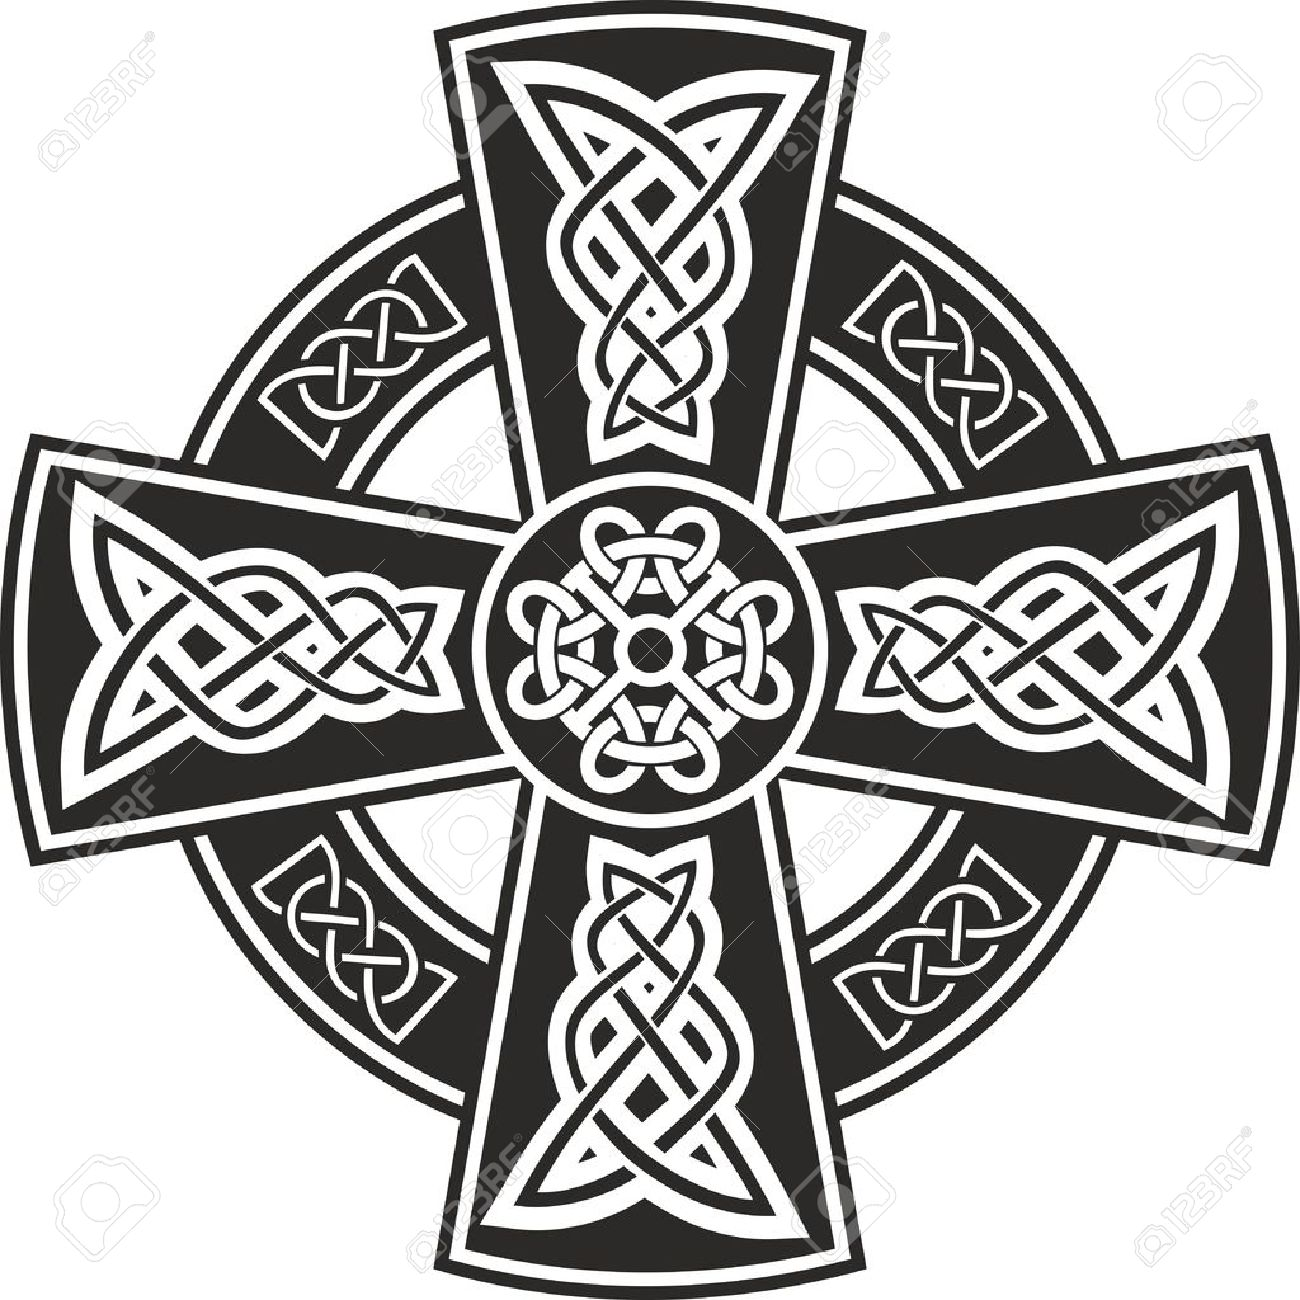 celtic cross stock photos u0026 pictures royalty free celtic cross